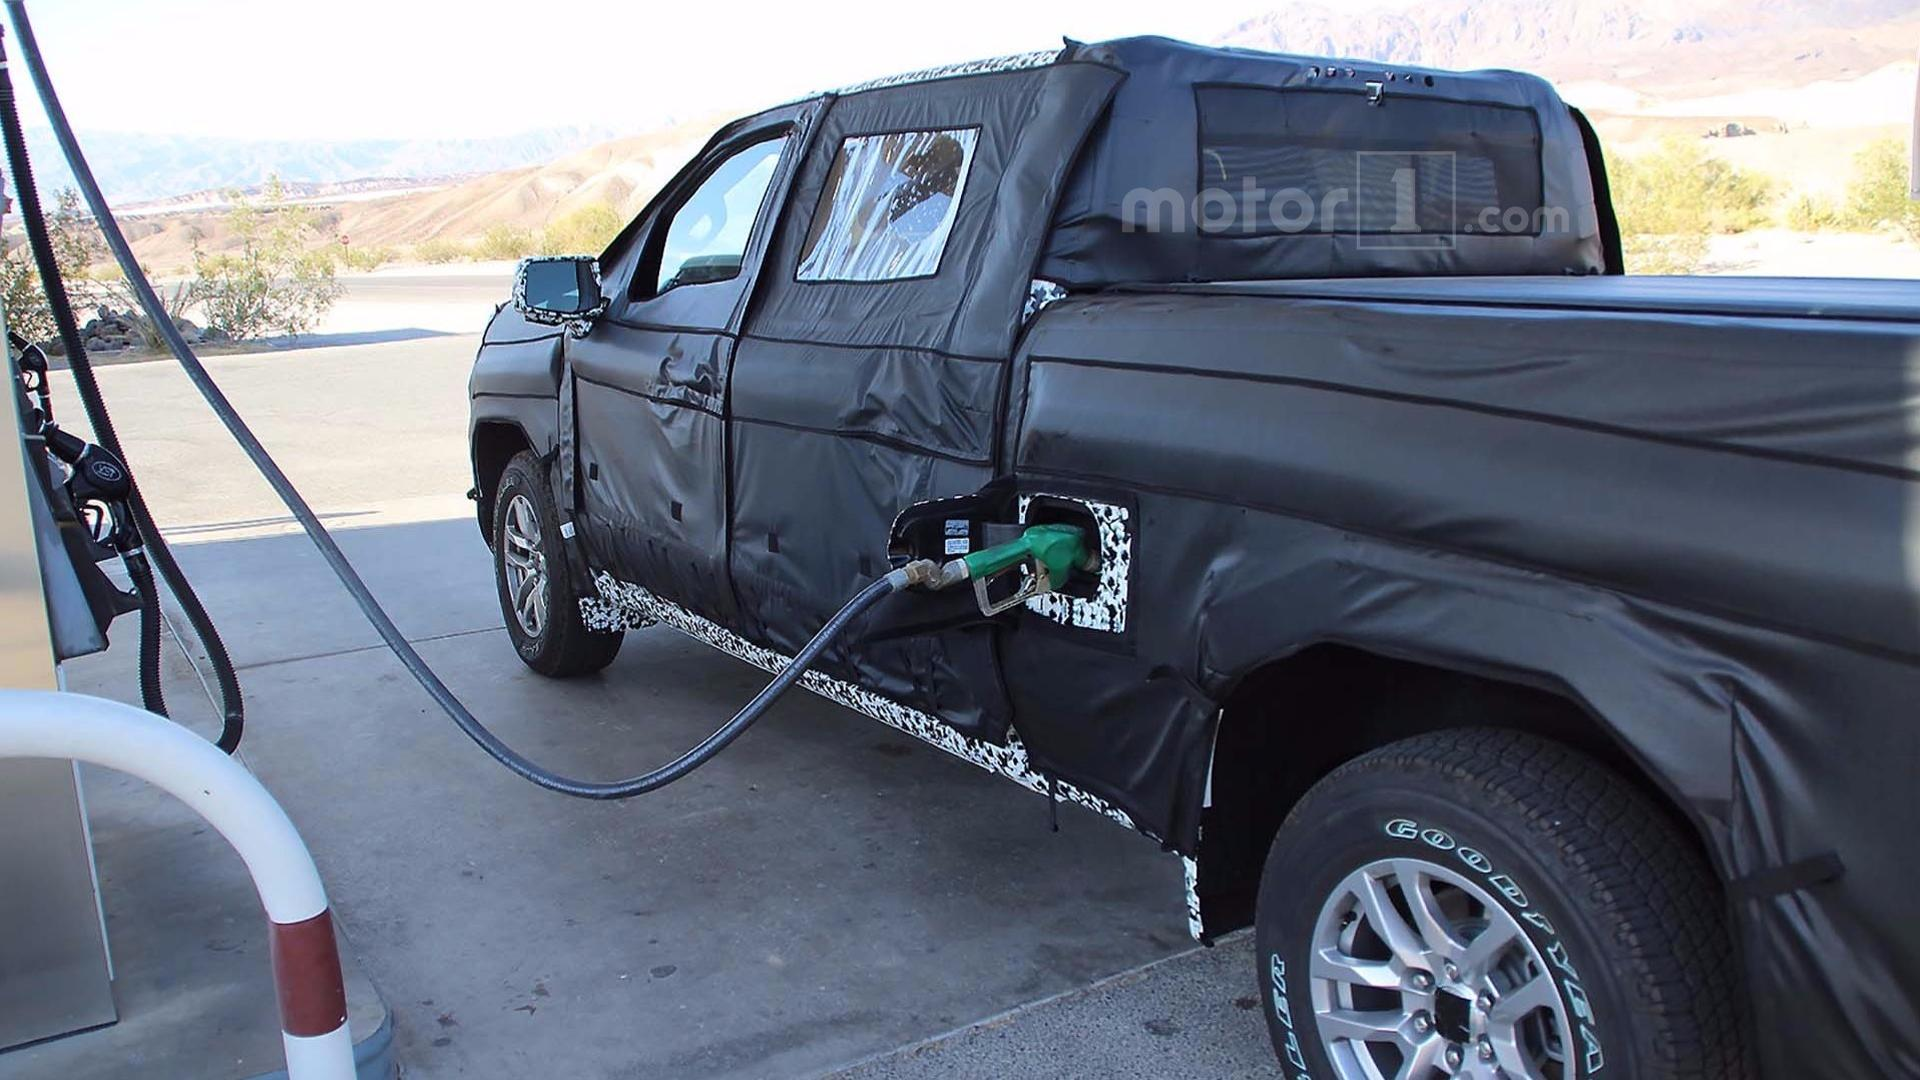 2019 Chevy Silverado Half-Ton Pickup Spied Filling Up With